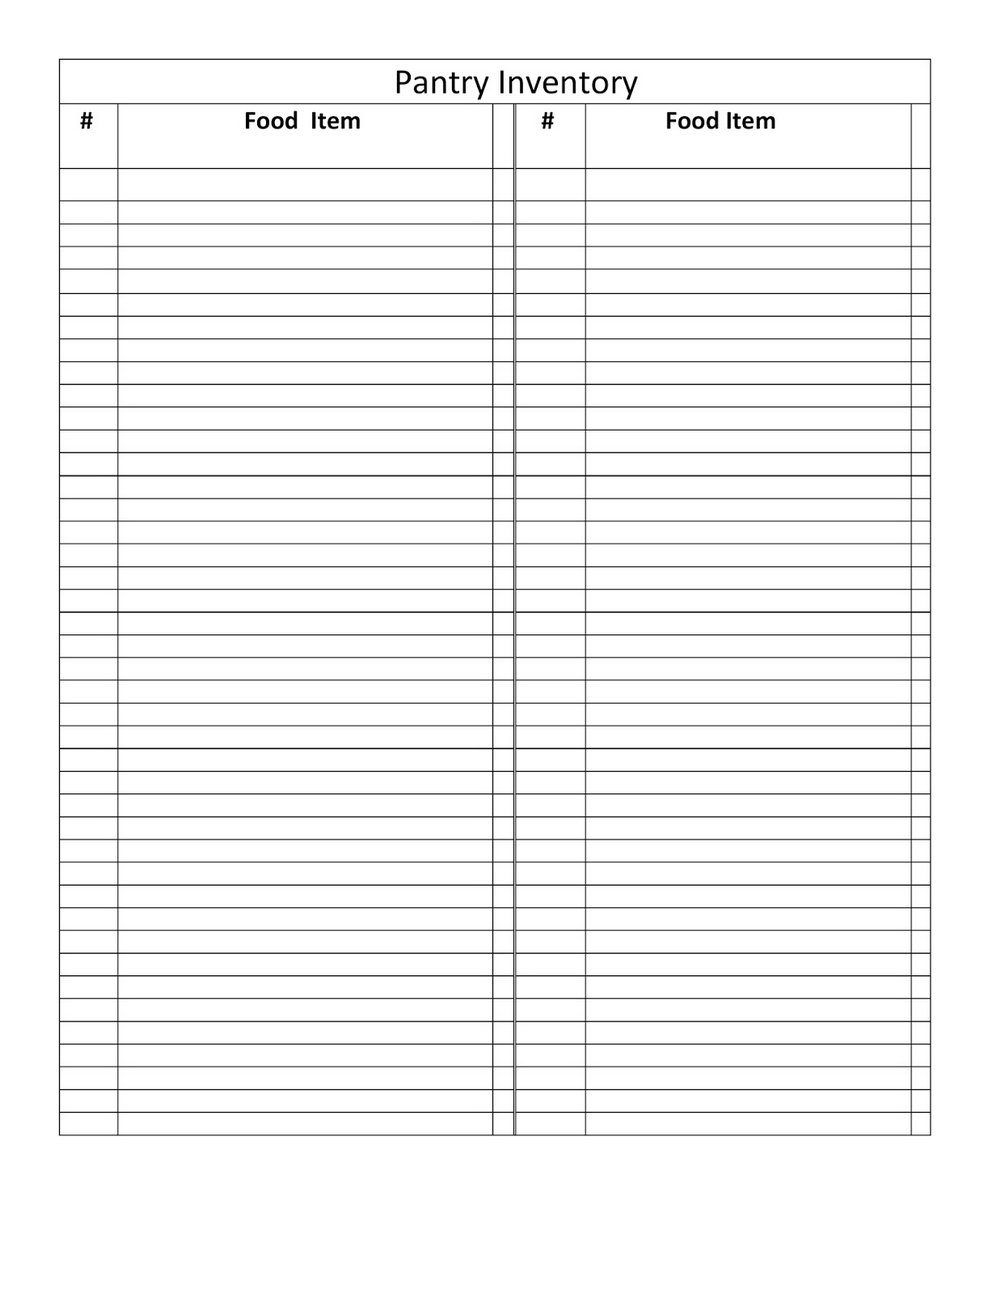 Pantry Inventory Spreadsheet With Pantry Inventory Template Wwwtopsimagescom Excel Fresh Food Storage